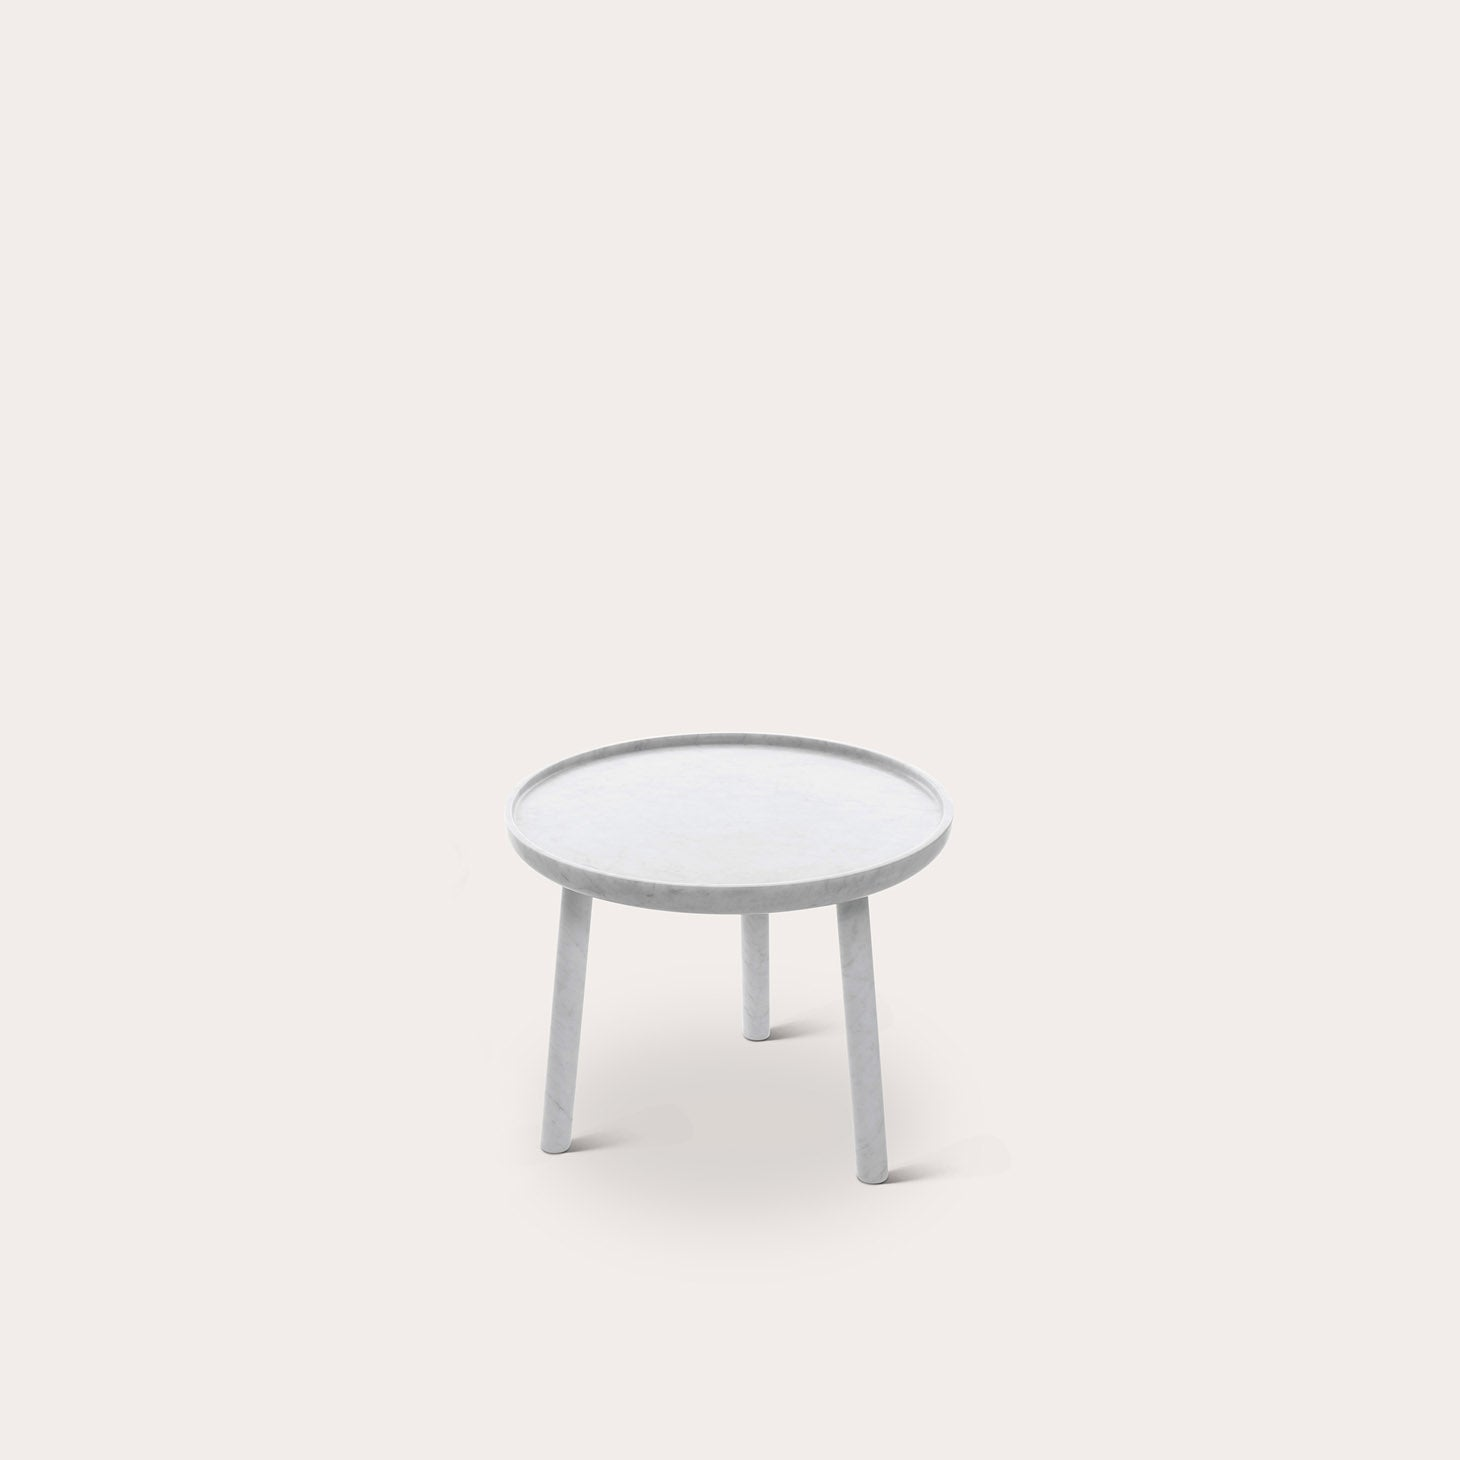 Toulouse Tables Jasper Morrison Designer Furniture Sku: 625-230-10061